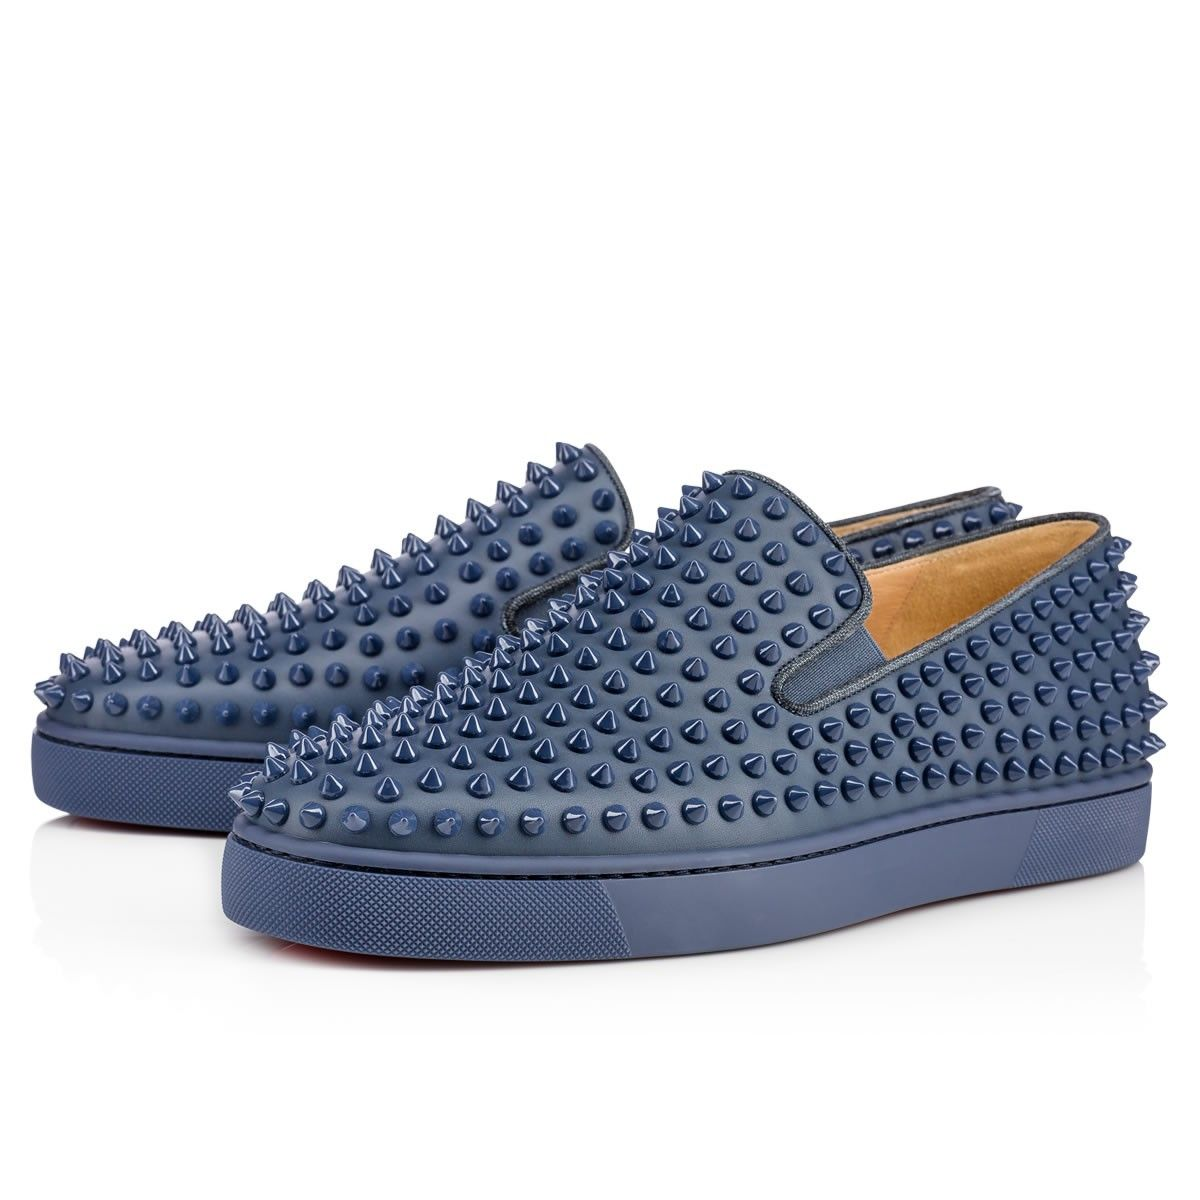 Roller-Boat Men's Flat  Blues Leather - Men Shoes - Christian Louboutin